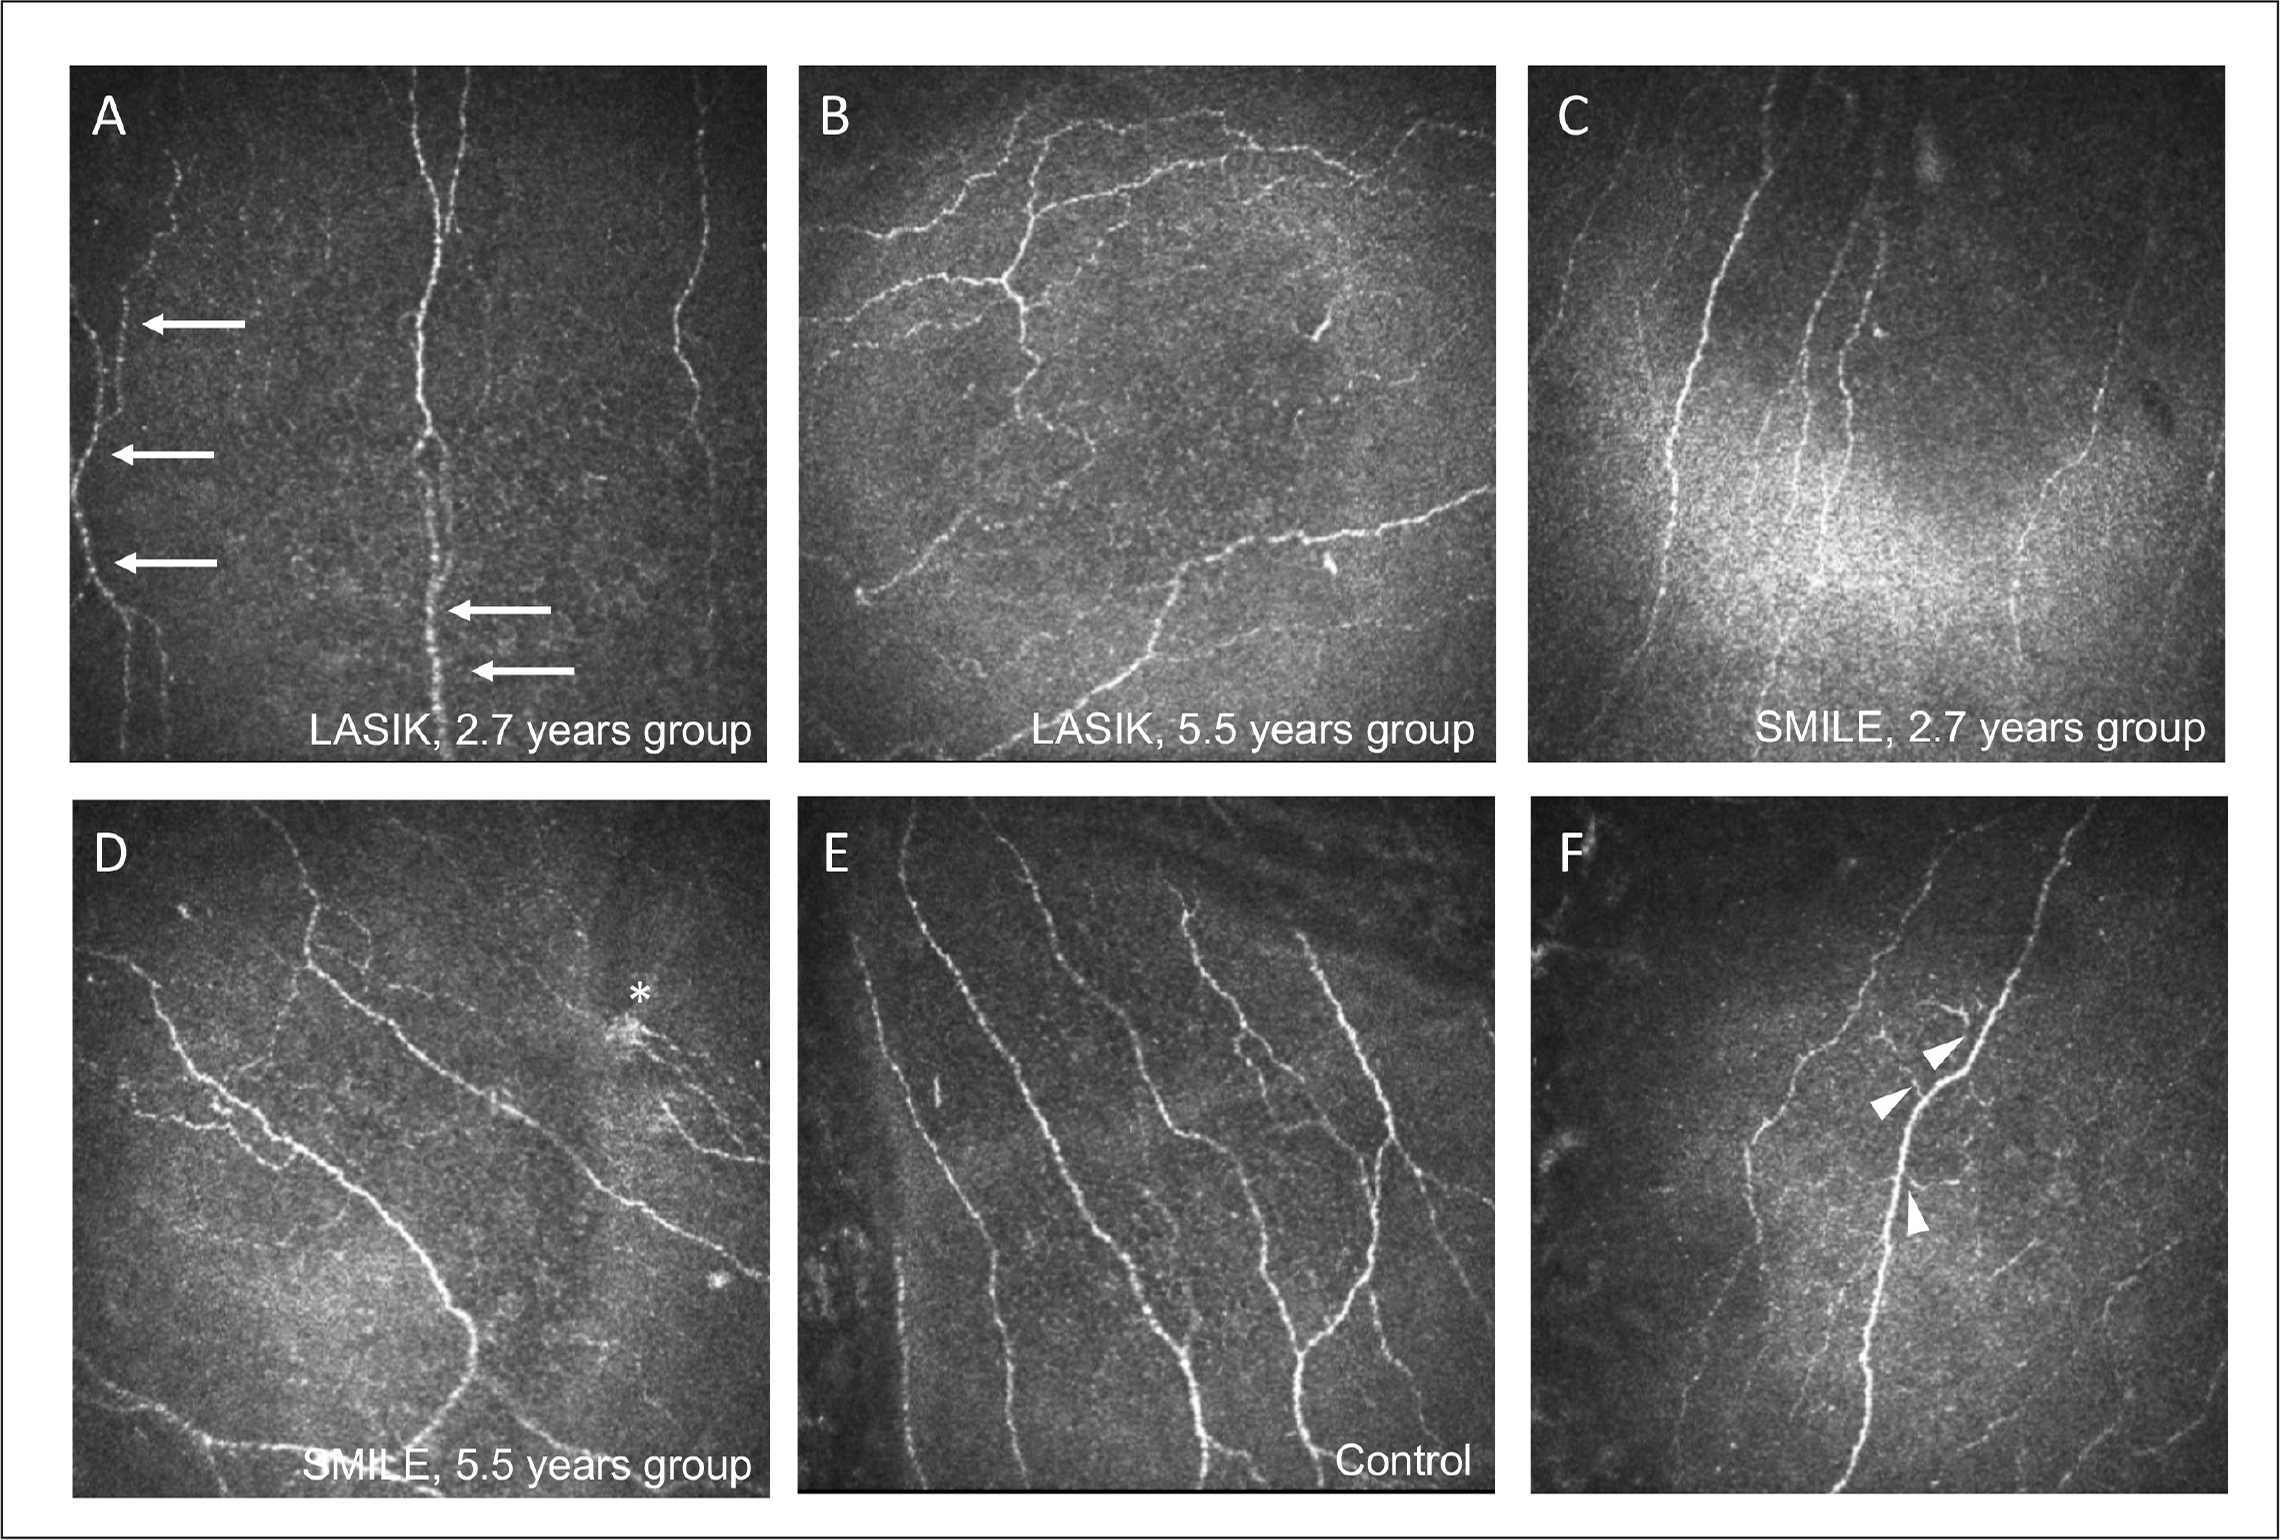 Representative in vivo confocal microscopy images on the central cornea for different groups. (A, B) The laser in situ keratomileusis (LASIK) eyes had significantly lower corneal nerve fiber density (CNFD), corneal nerve branch density (CNBD), corneal nerve fiber total branch density (CTBD), and corneal nerve fiber length (CNFL), and significantly more nerves with beading (arrows) than (C, D) the small incision lenticule extraction (SMILE) eyes. (B, D) The 5.5 years group (mean postoperative 5.5 years) had significantly higher CNFD, CNBD, and CNFL than the (A,C) 2.7 years group (mean postoperative 2.7 years), regardless of surgical types. (E) The control group had significantly higher CNFD and CNBD than the 5.5 year group in both SMILE and LASIK surgery. The postoperative eyes, irrespective of surgical types, had more tortuous nerves compared to normal patients. The (F) sprouting nerves (arrowheads) and (D) microneuromas (asterisk) were seen in surgical groups but not in the control group.